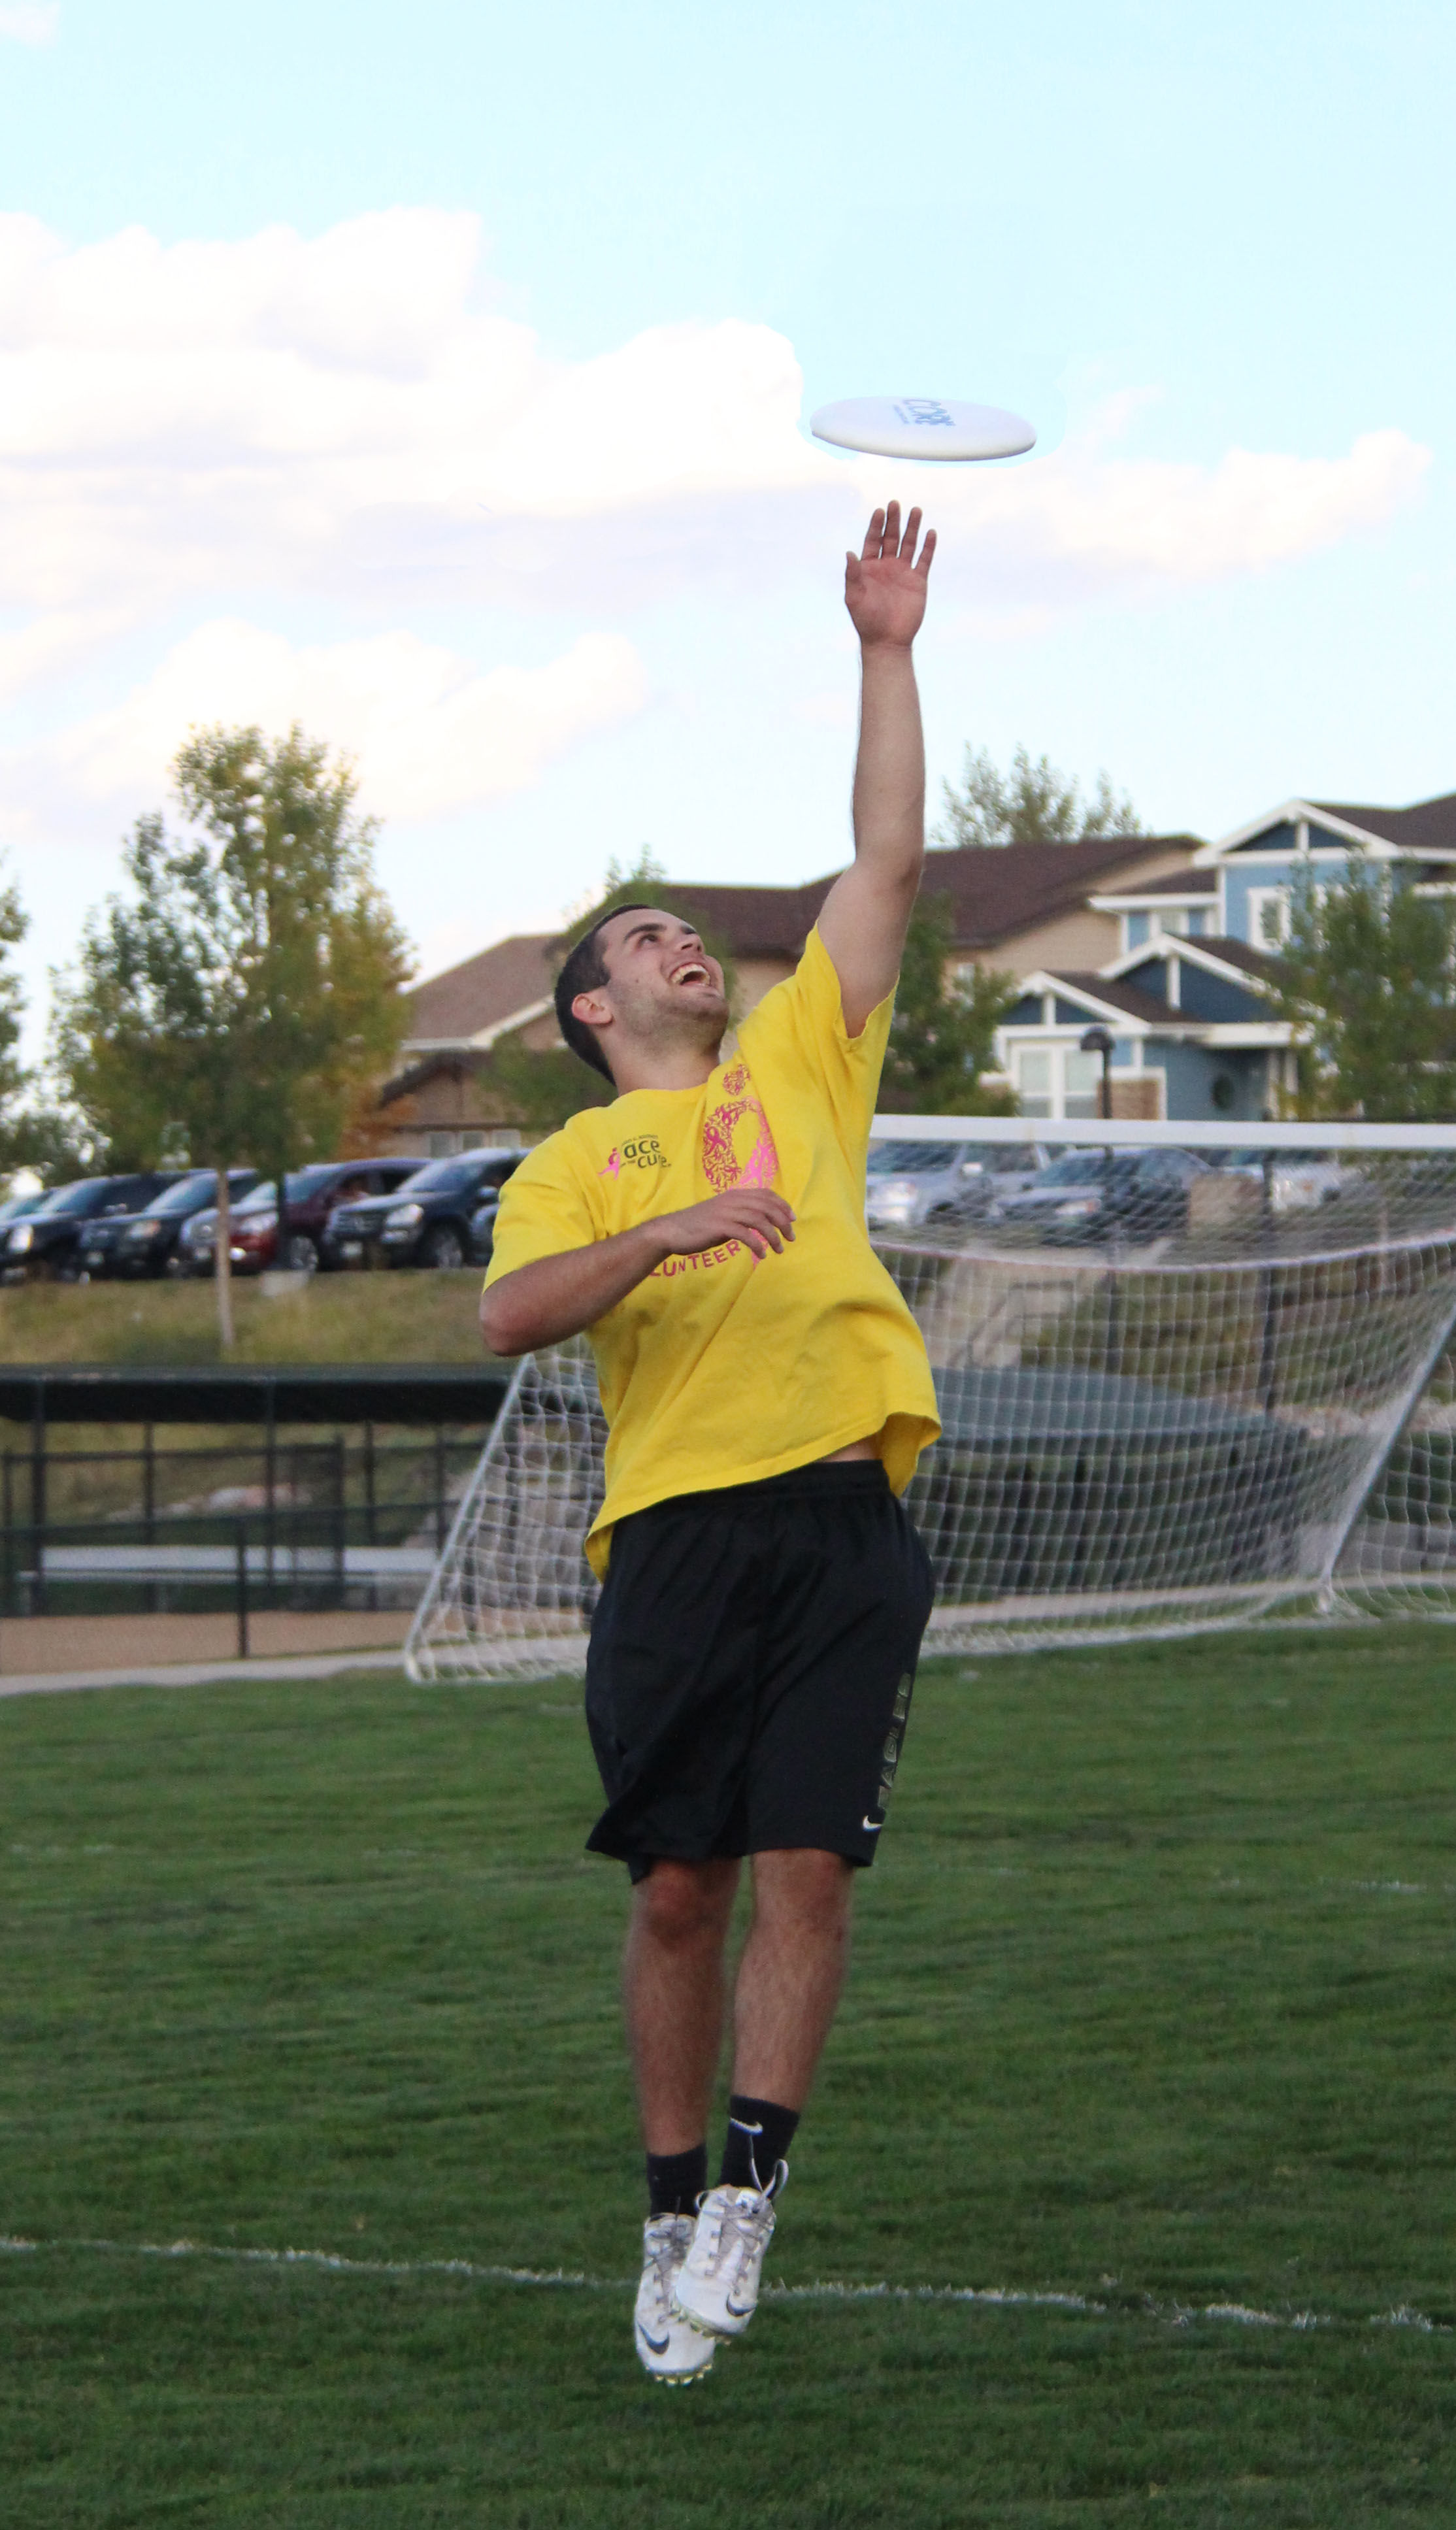 Senior John Harris reaches up to grab a toss from a fellow teammate during Ultimate Frisbee practice. The 2015-2016 season marked the first year that the team competed against other schools.